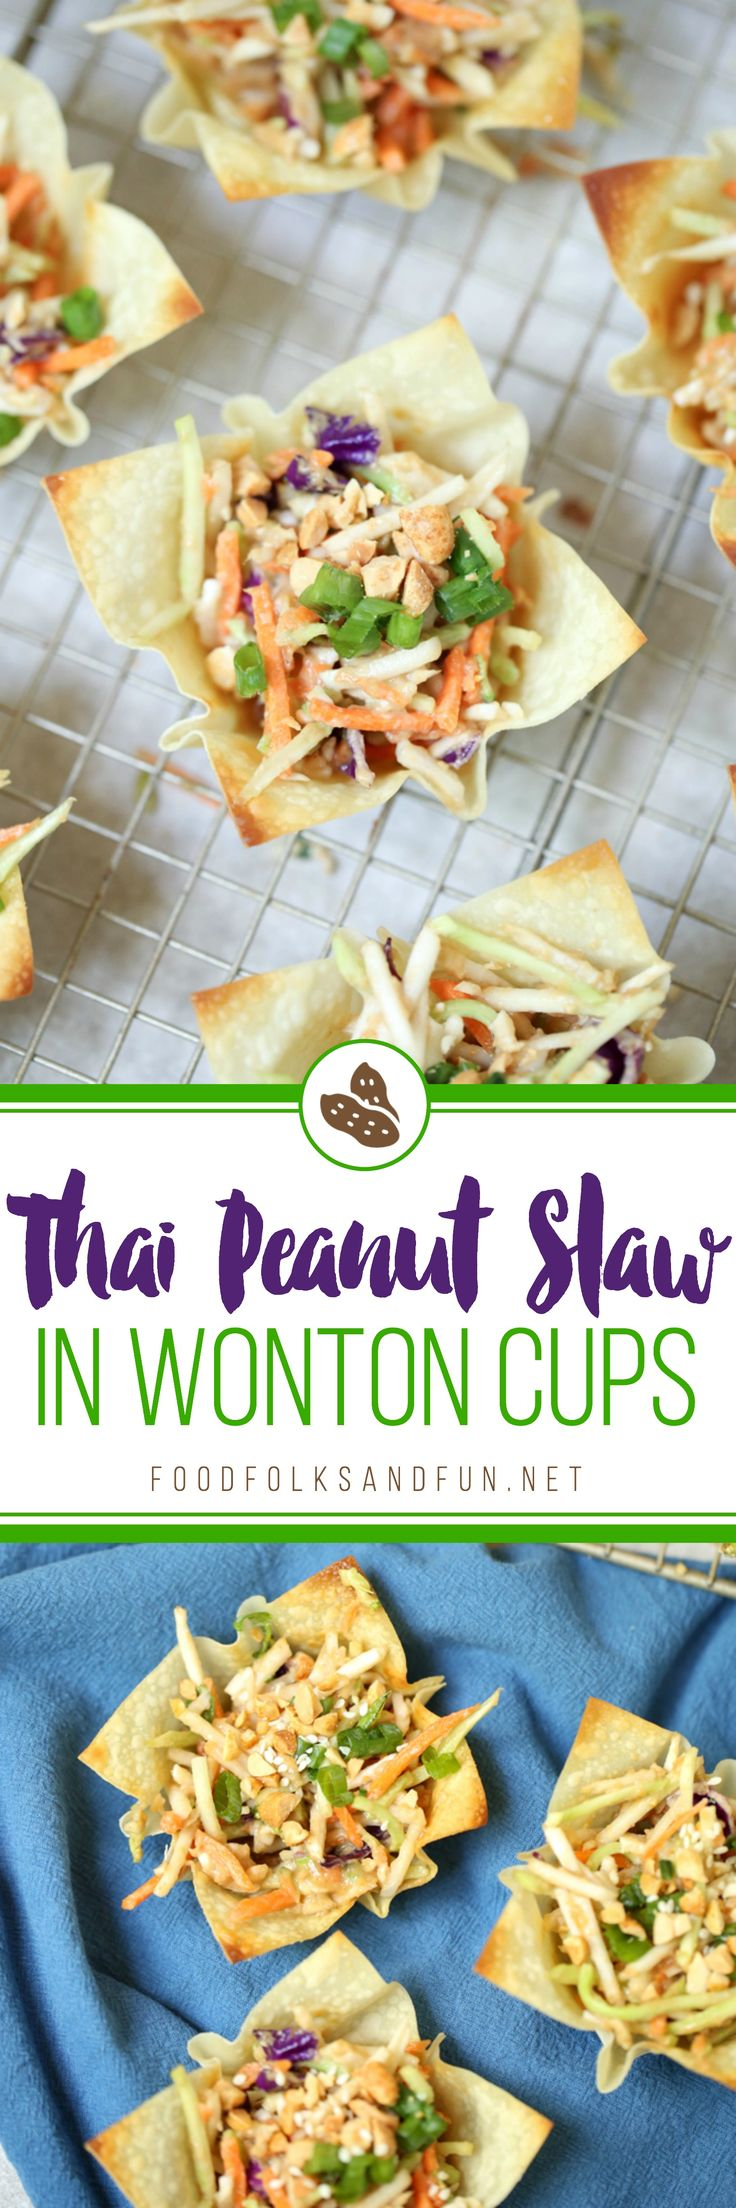 Asian Coleslaw with Thai Peanut Dressing in Wonton Cups is an easy side dish or appetizer for summer cookouts.